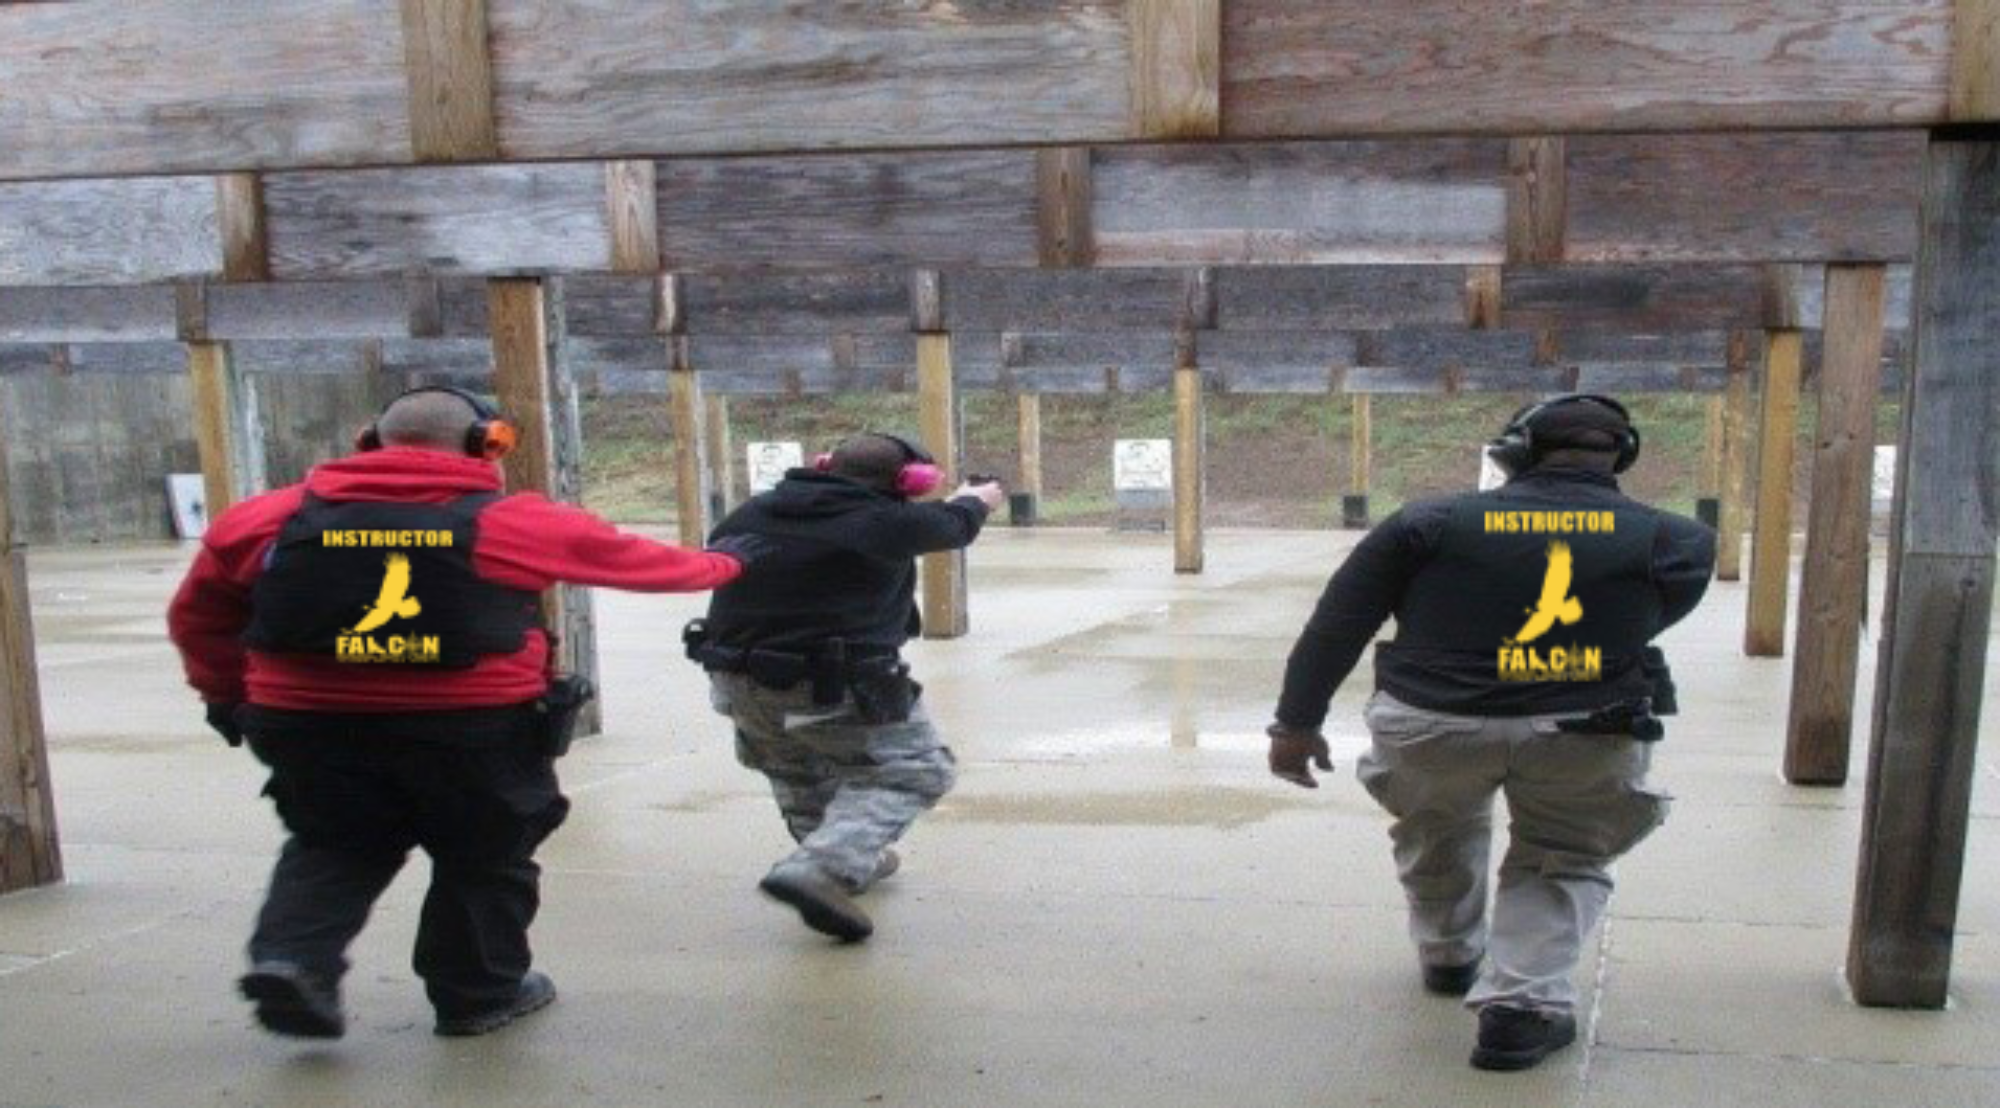 Falcon, Professional Security and Training LLC - Security Services - Private Investigation - DCJS - Self-Defense - Firearms Training - Ballistic Products